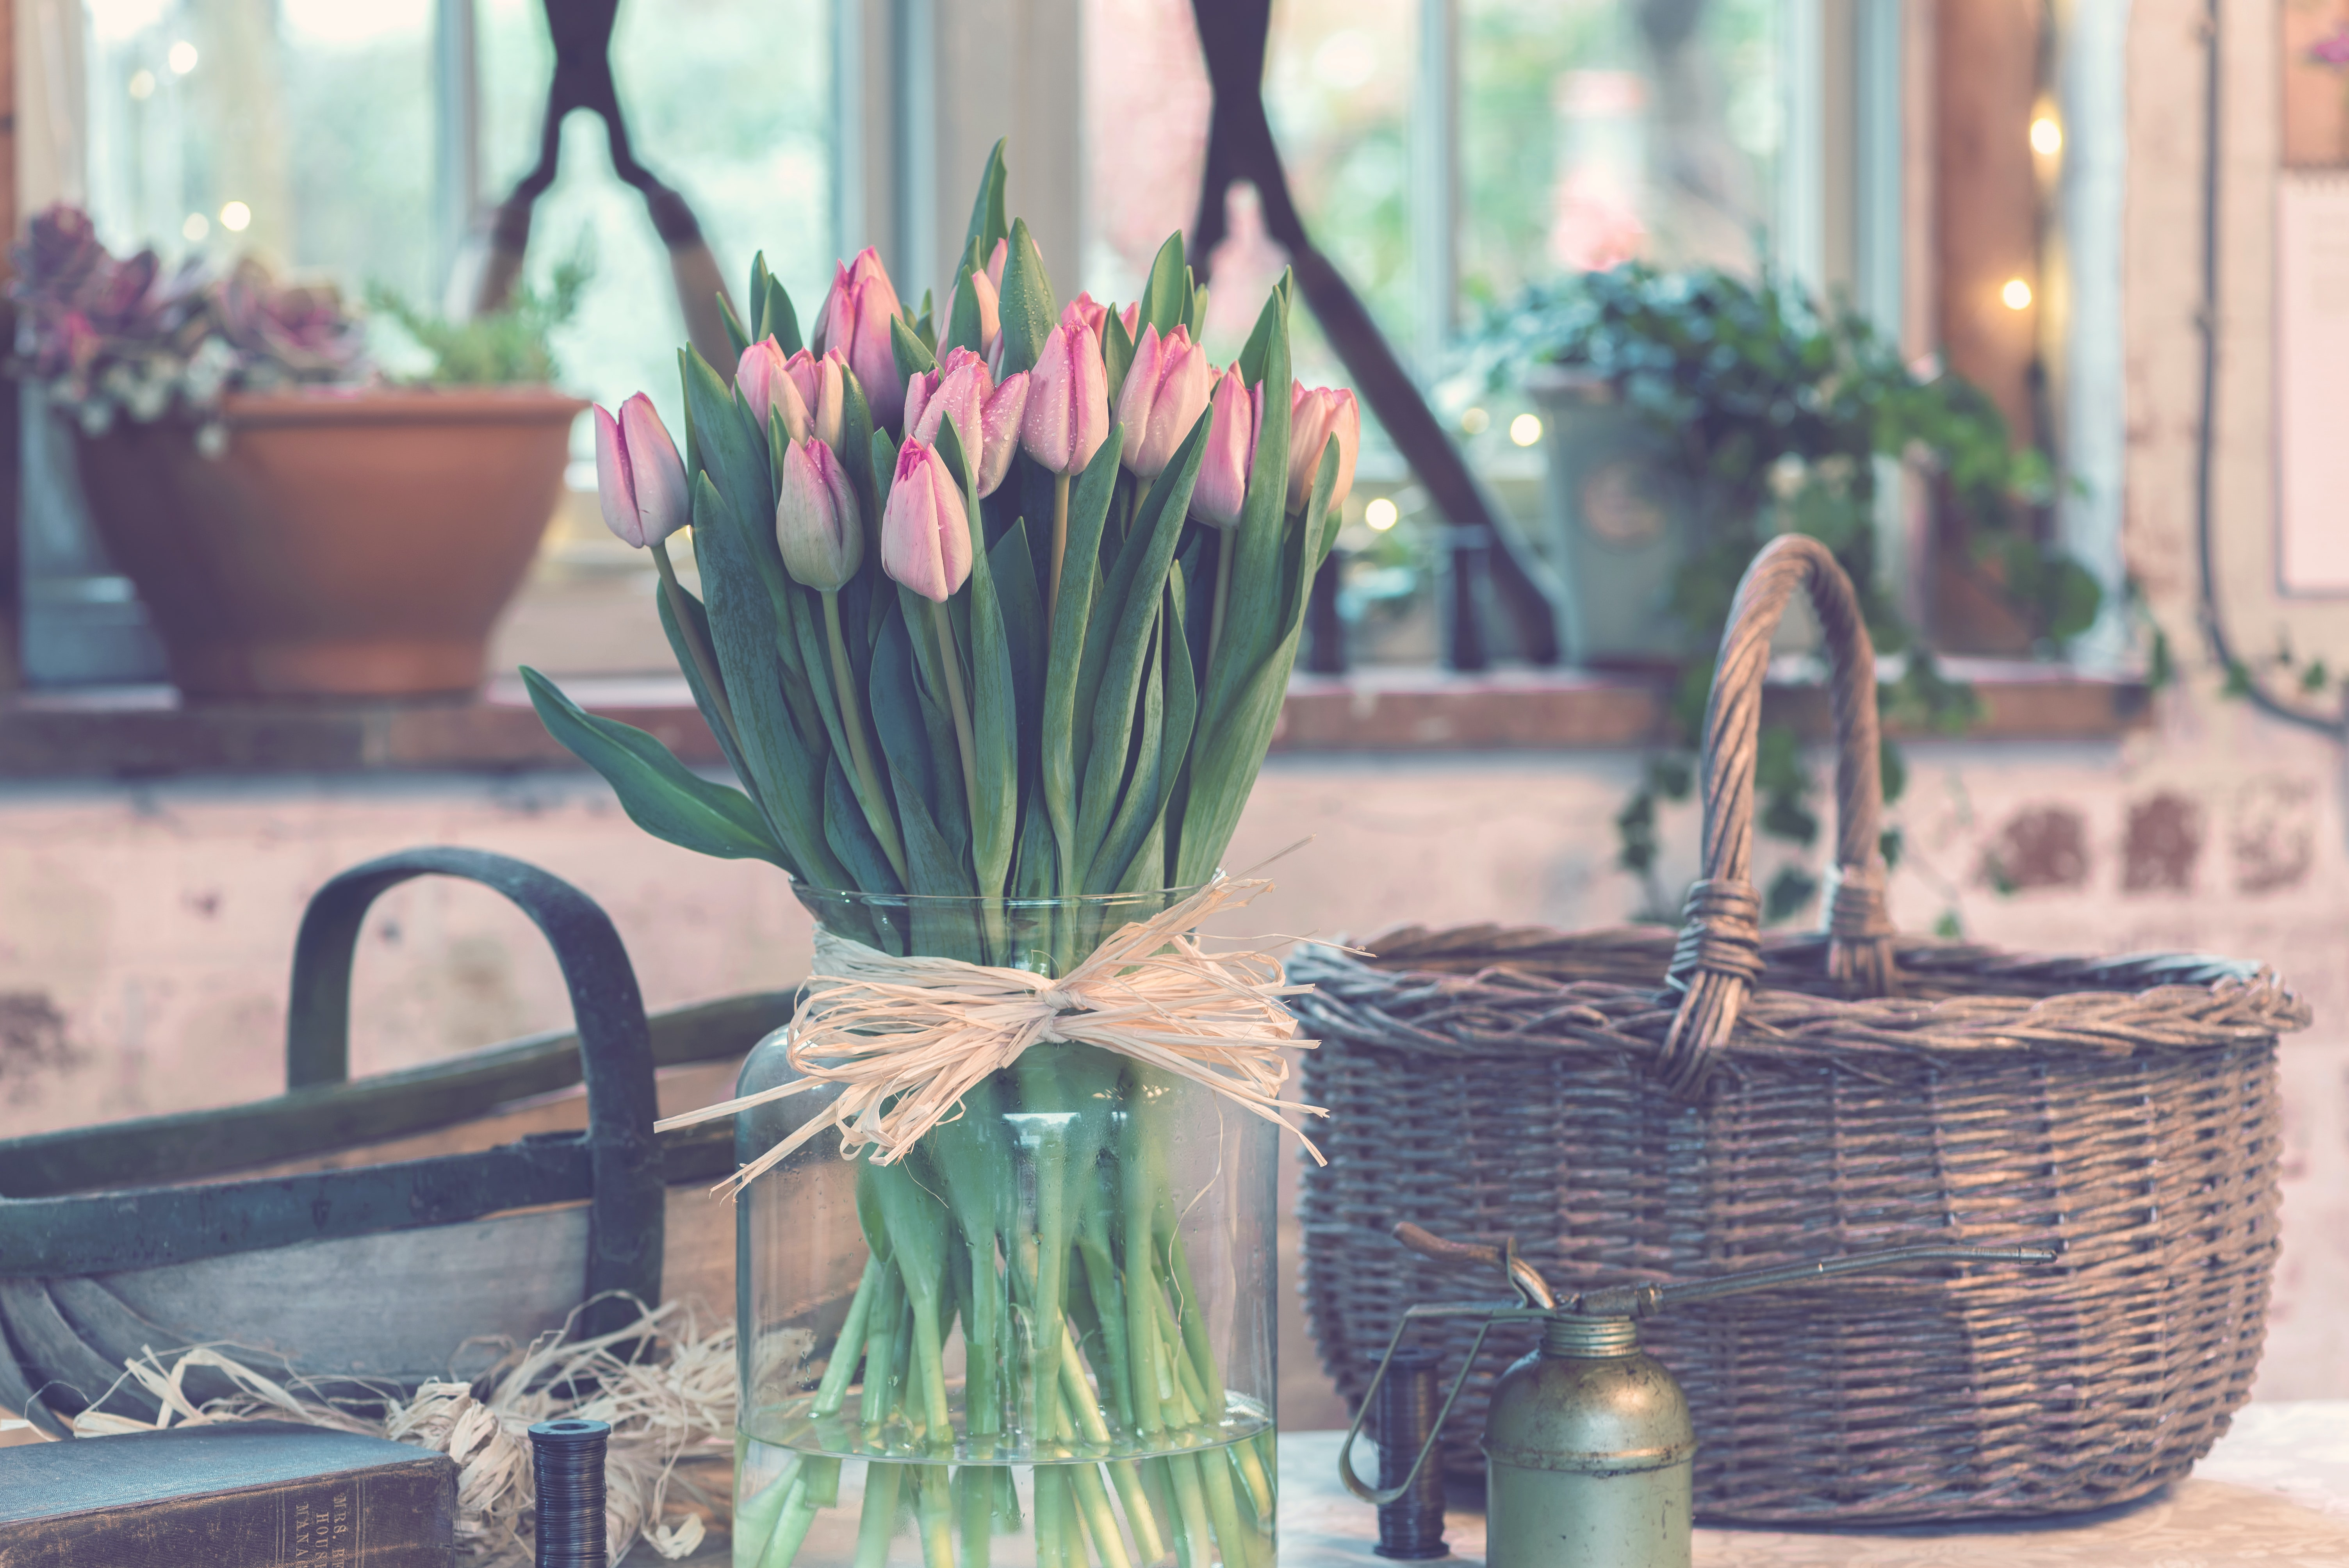 A large glass vase filled with pink tulips next to a wicker basket